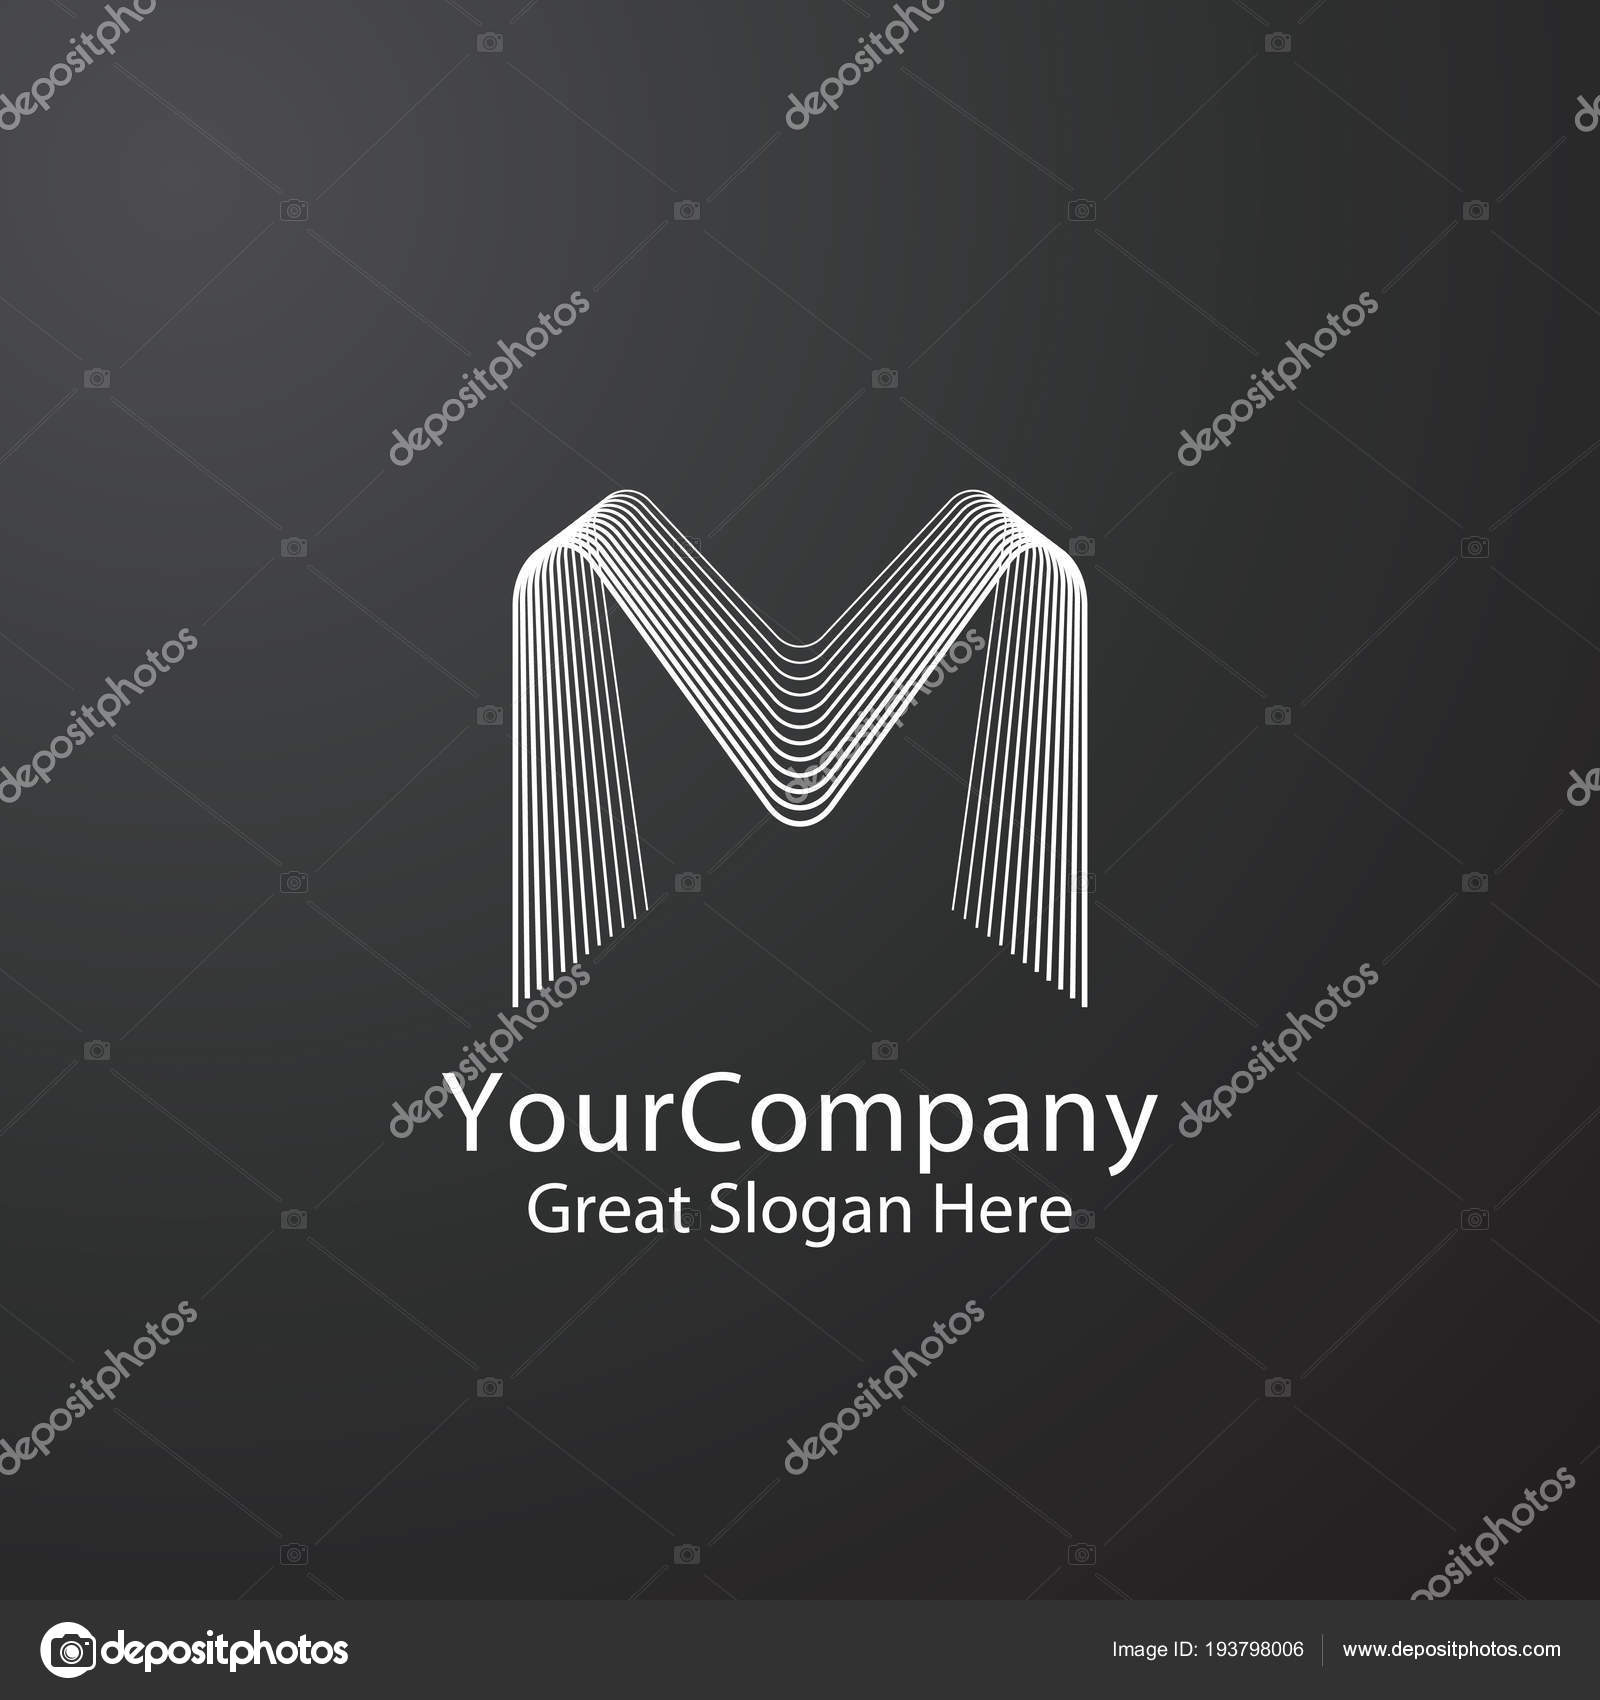 Letter m logo design for fashion brand initial wedding invitation letter m logo design for fashion brand initial wedding invitation business finance linear creative monochrome monogram outline symbol vector stopboris Image collections